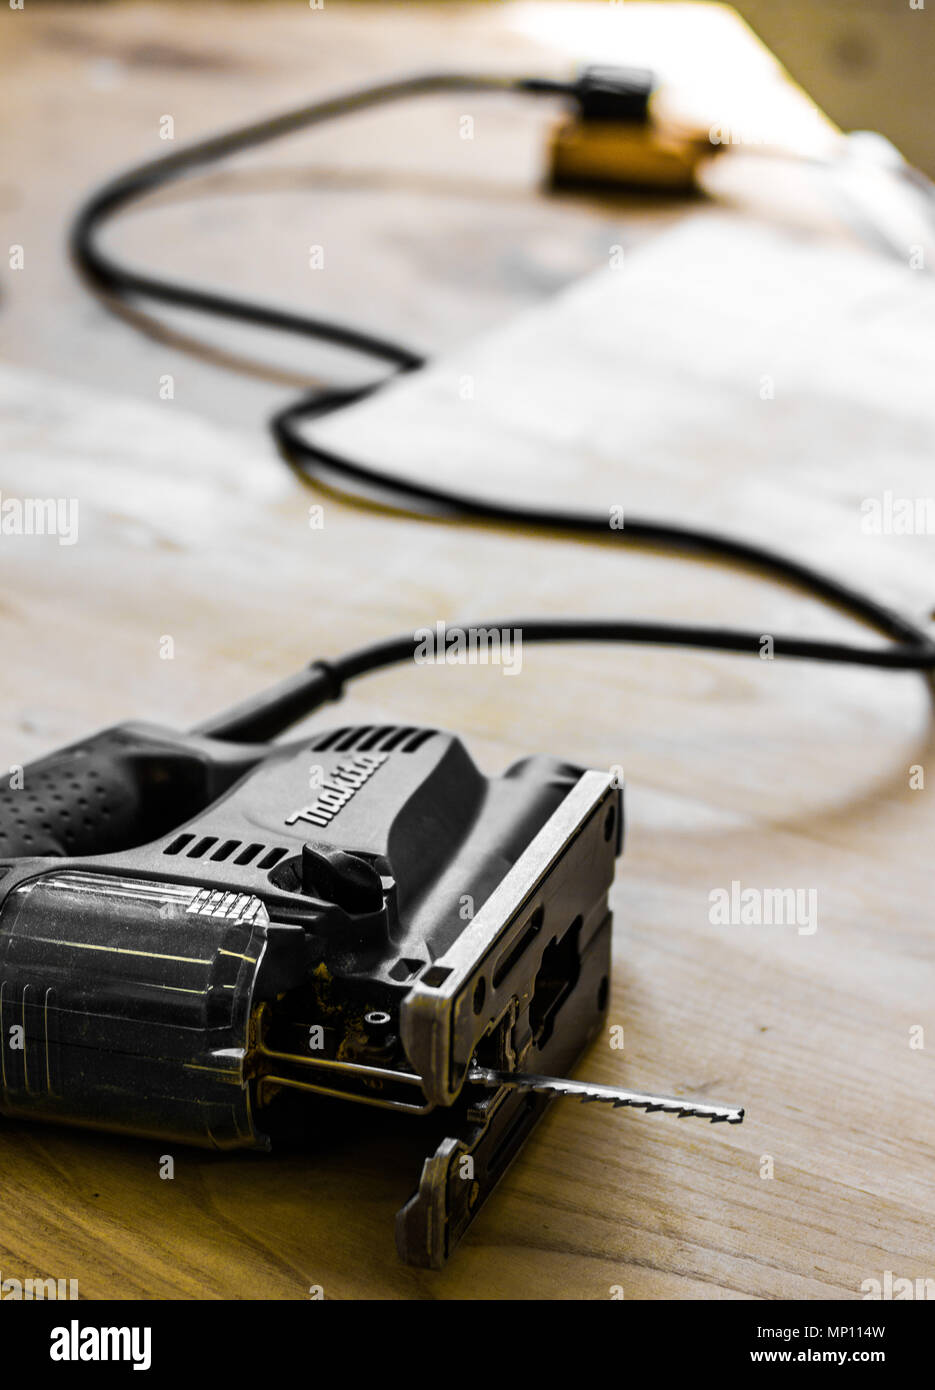 Jigsaw tool close up lying on a work bench plugged in - Stock Image